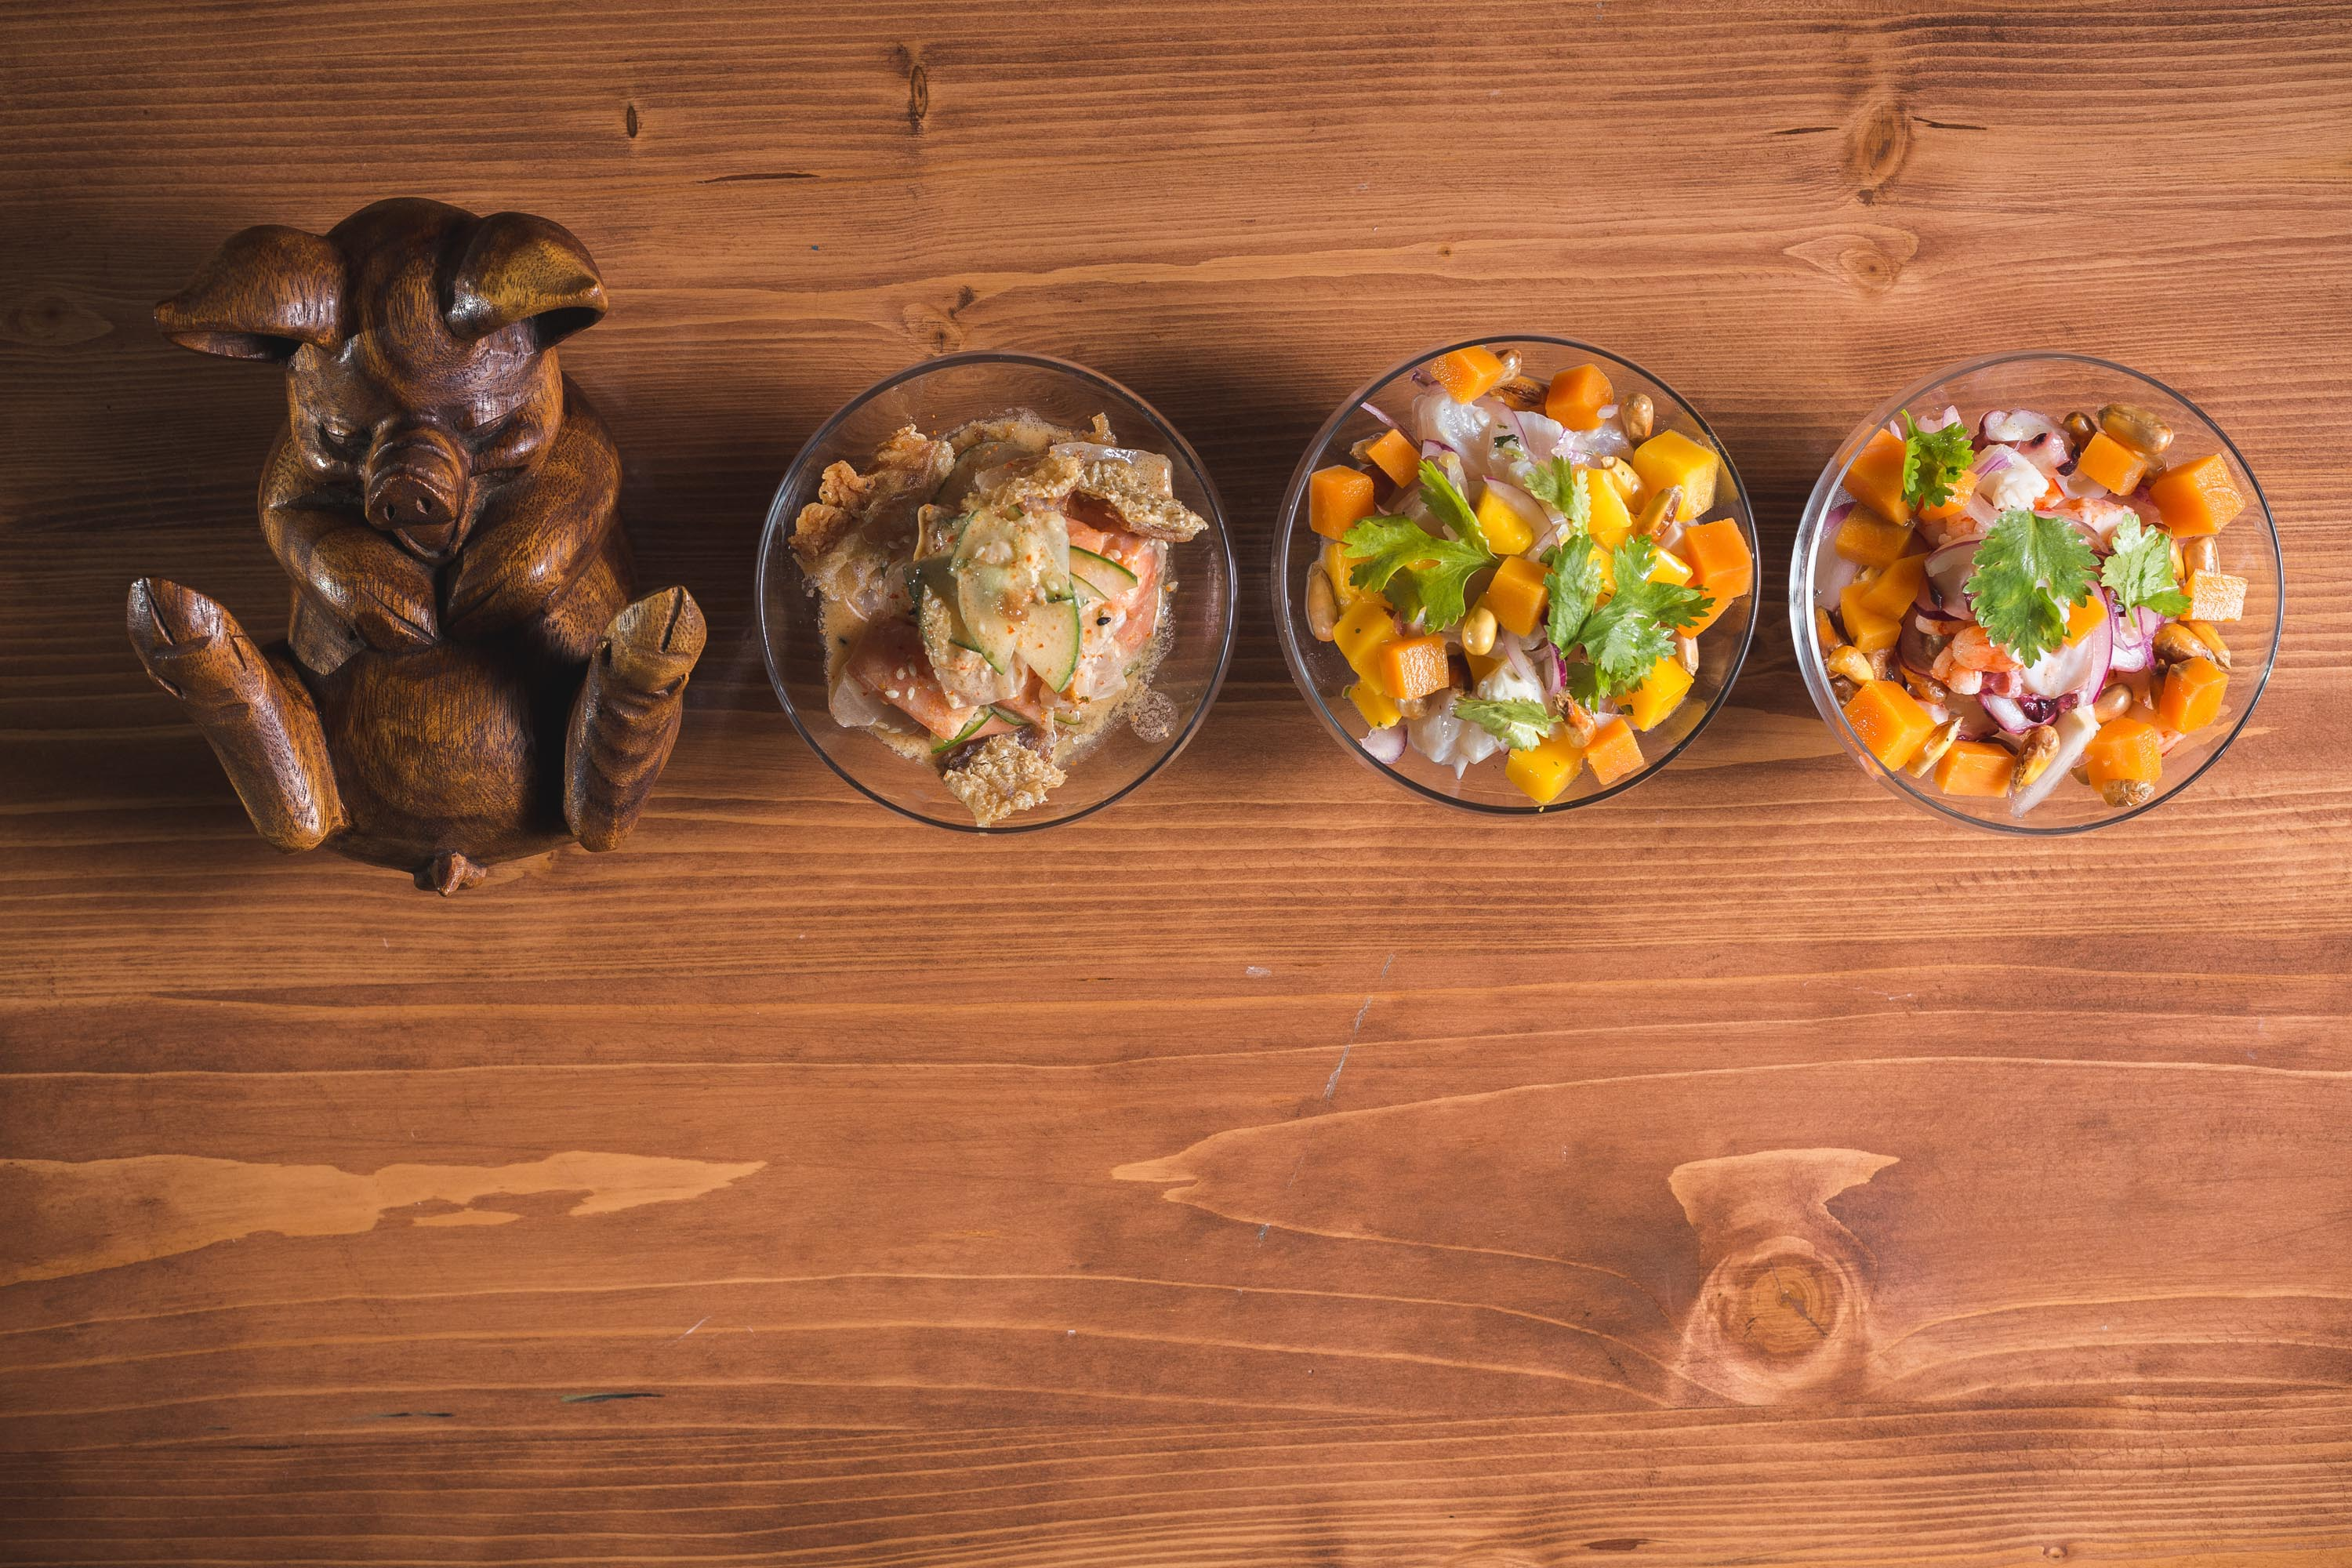 Cocina Peruvia offers a variety of ceviches, from the Ceviche Mixto, Ceviche Nikkei, and Ceviche Pescado.